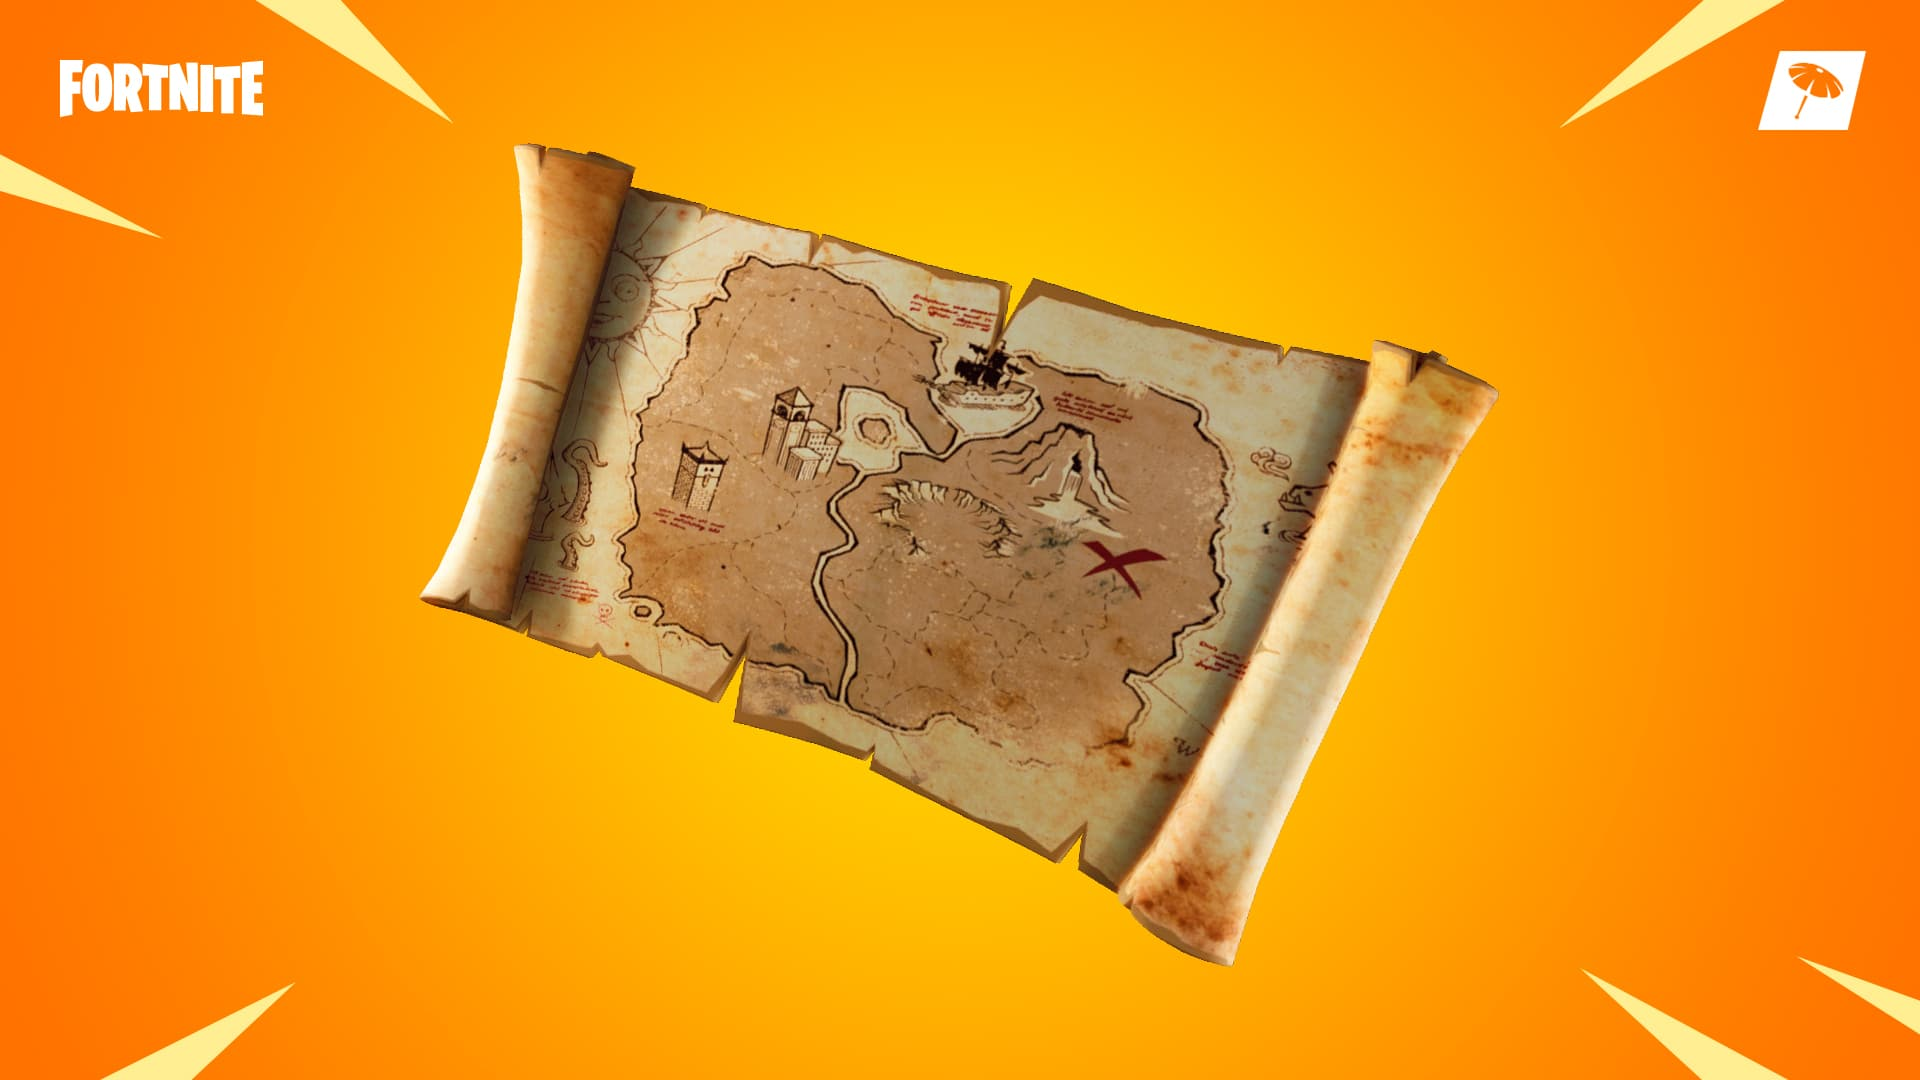 Fortnite patch notes v8.01: Buried Treasure leads to legendary loot